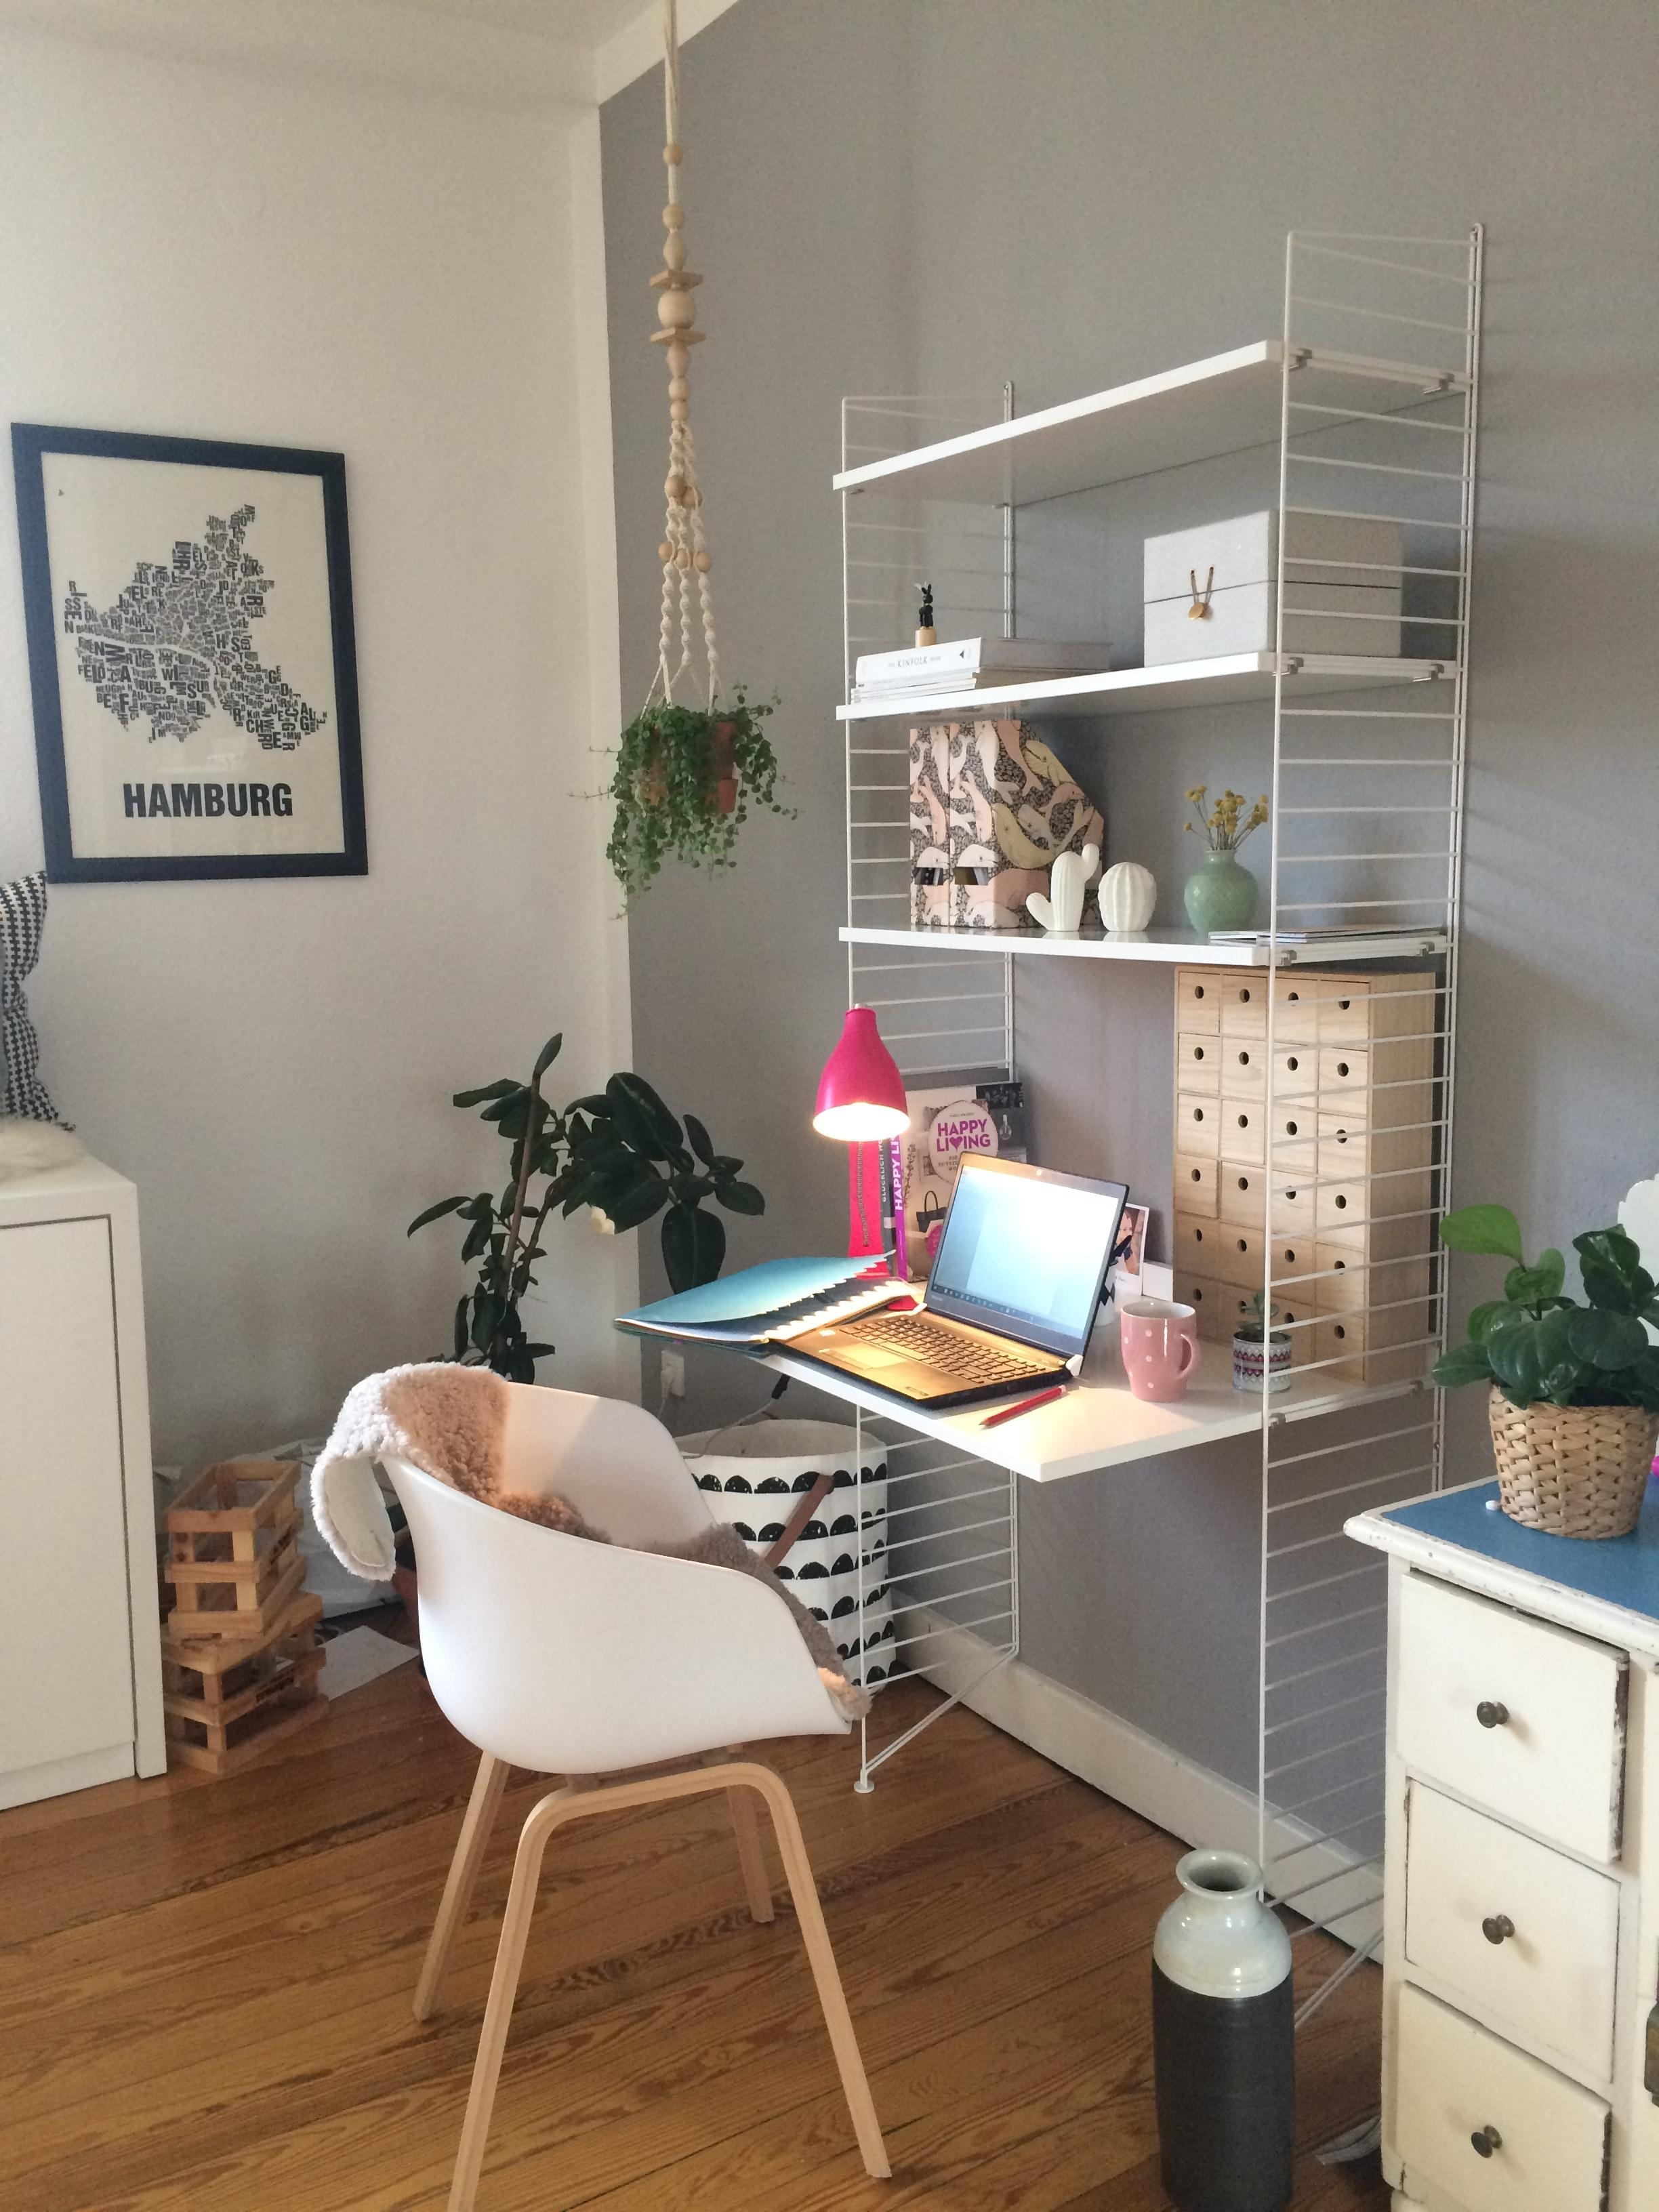 Today: Home Office. #workspace #interior #living #arbeitsplatz #wandgestaltung #altundneu #designklassiker #scandy